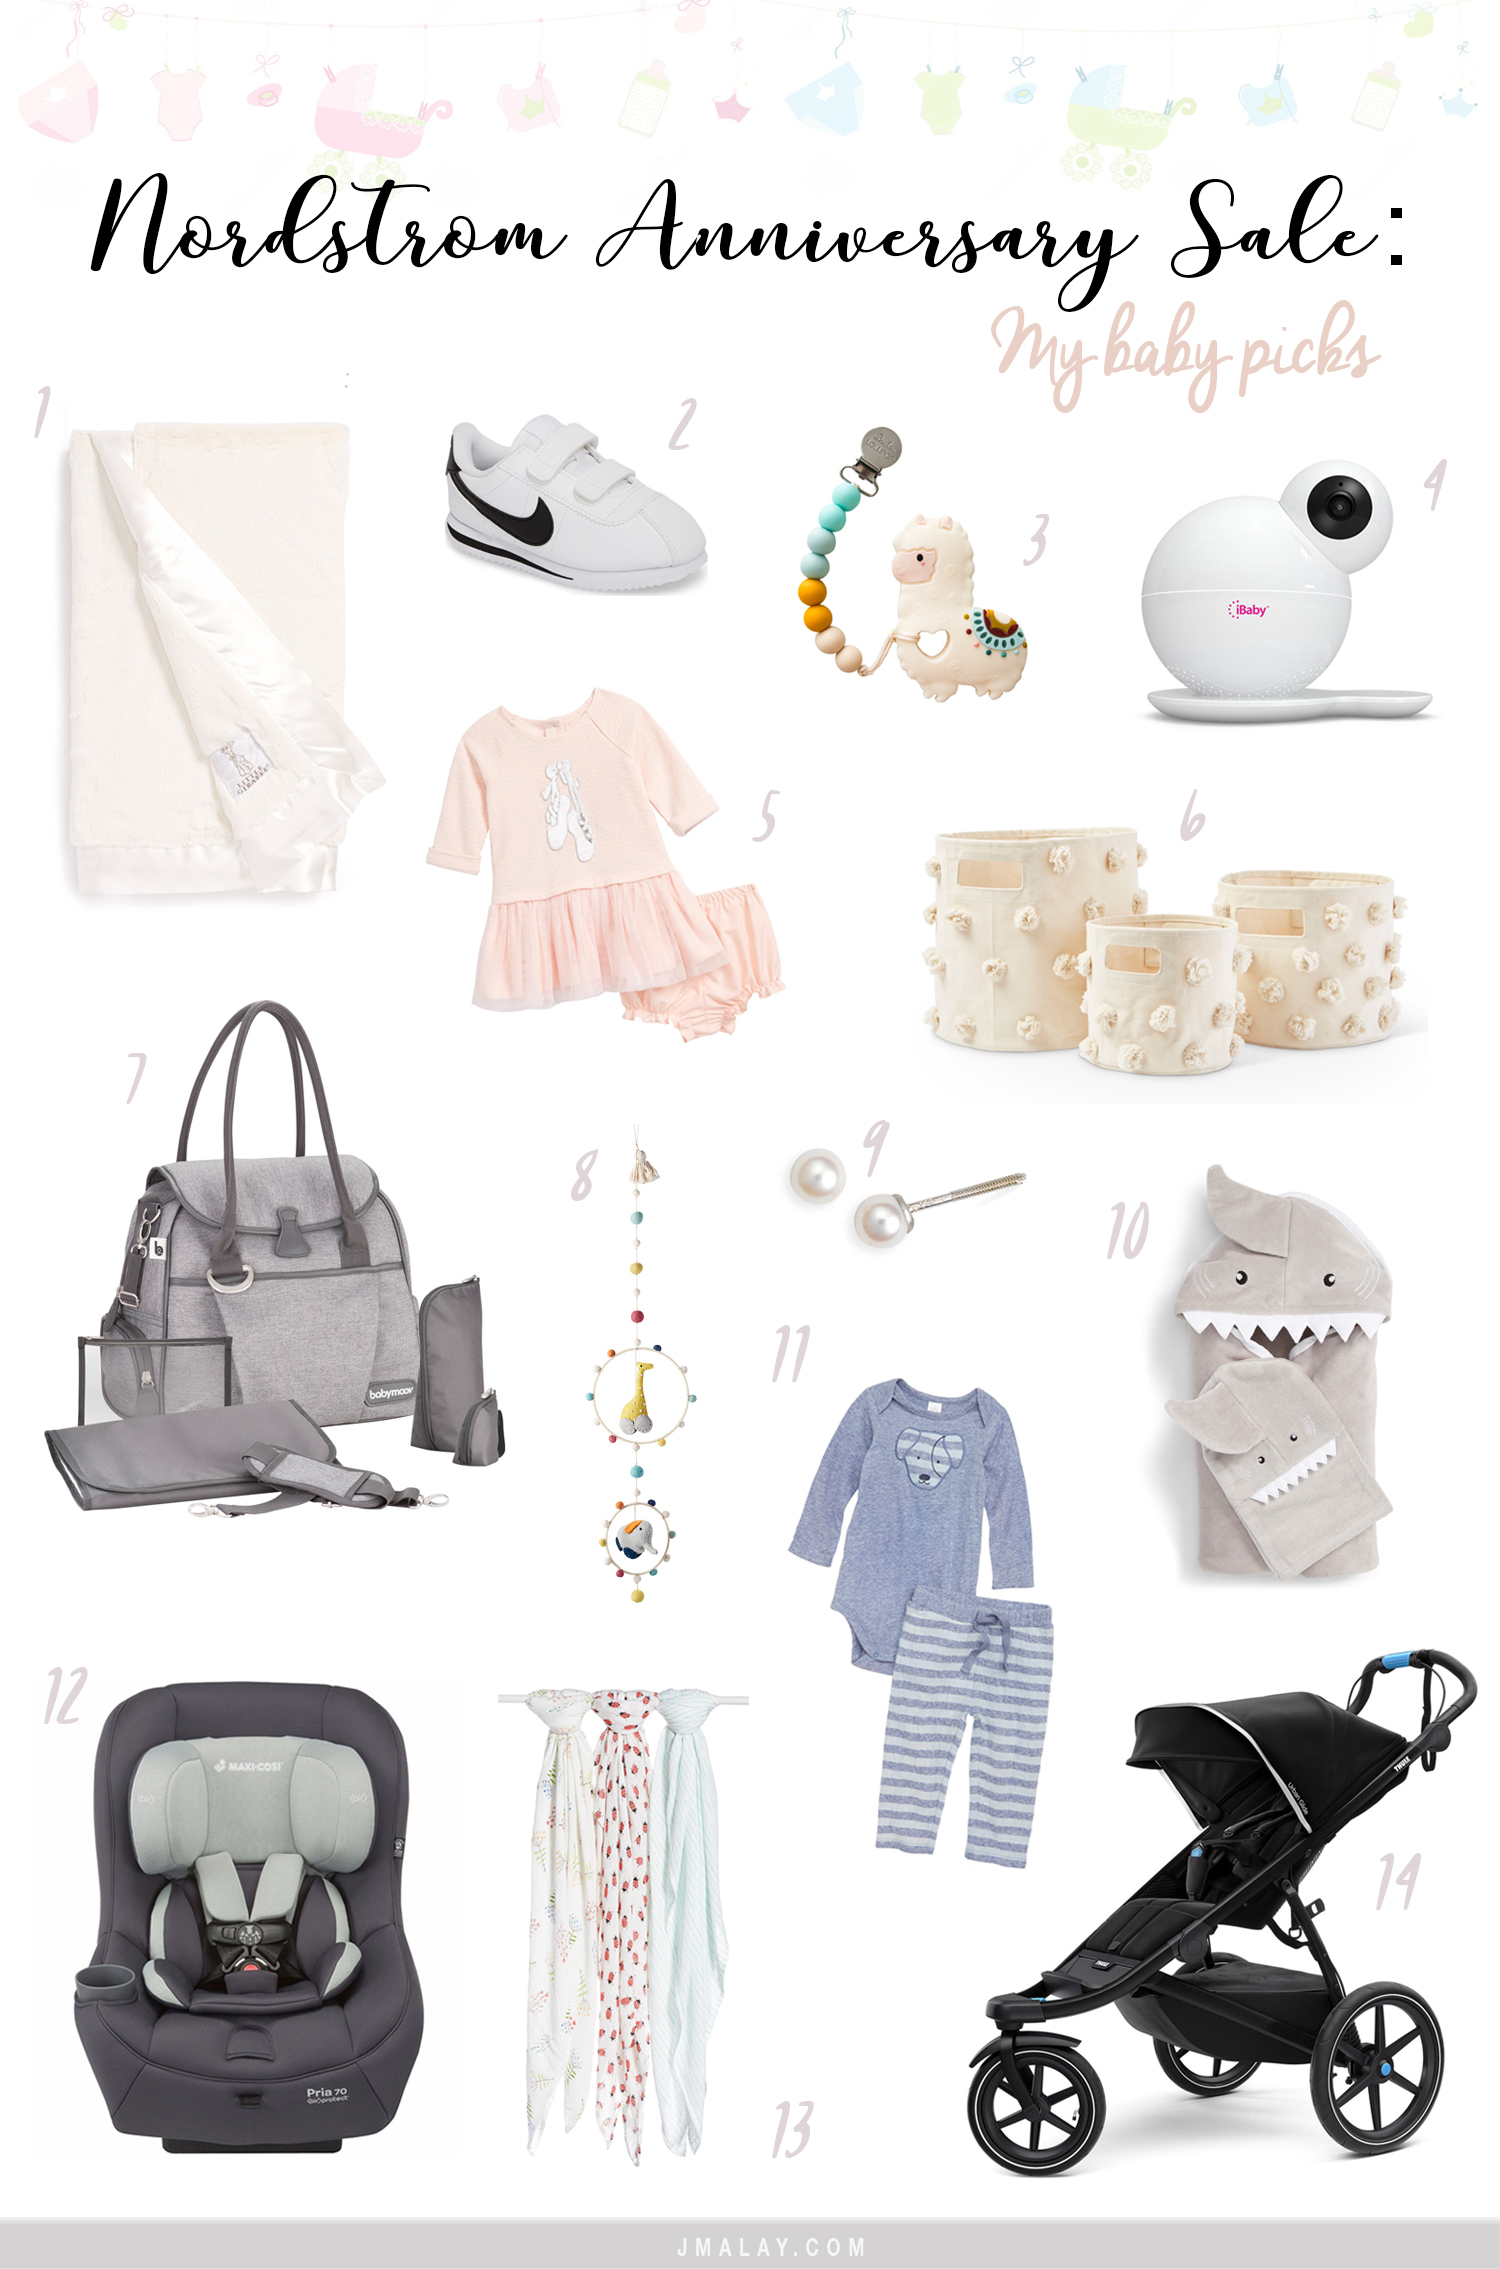 Nordstrom Anniversary Sale 2018 best baby items gear